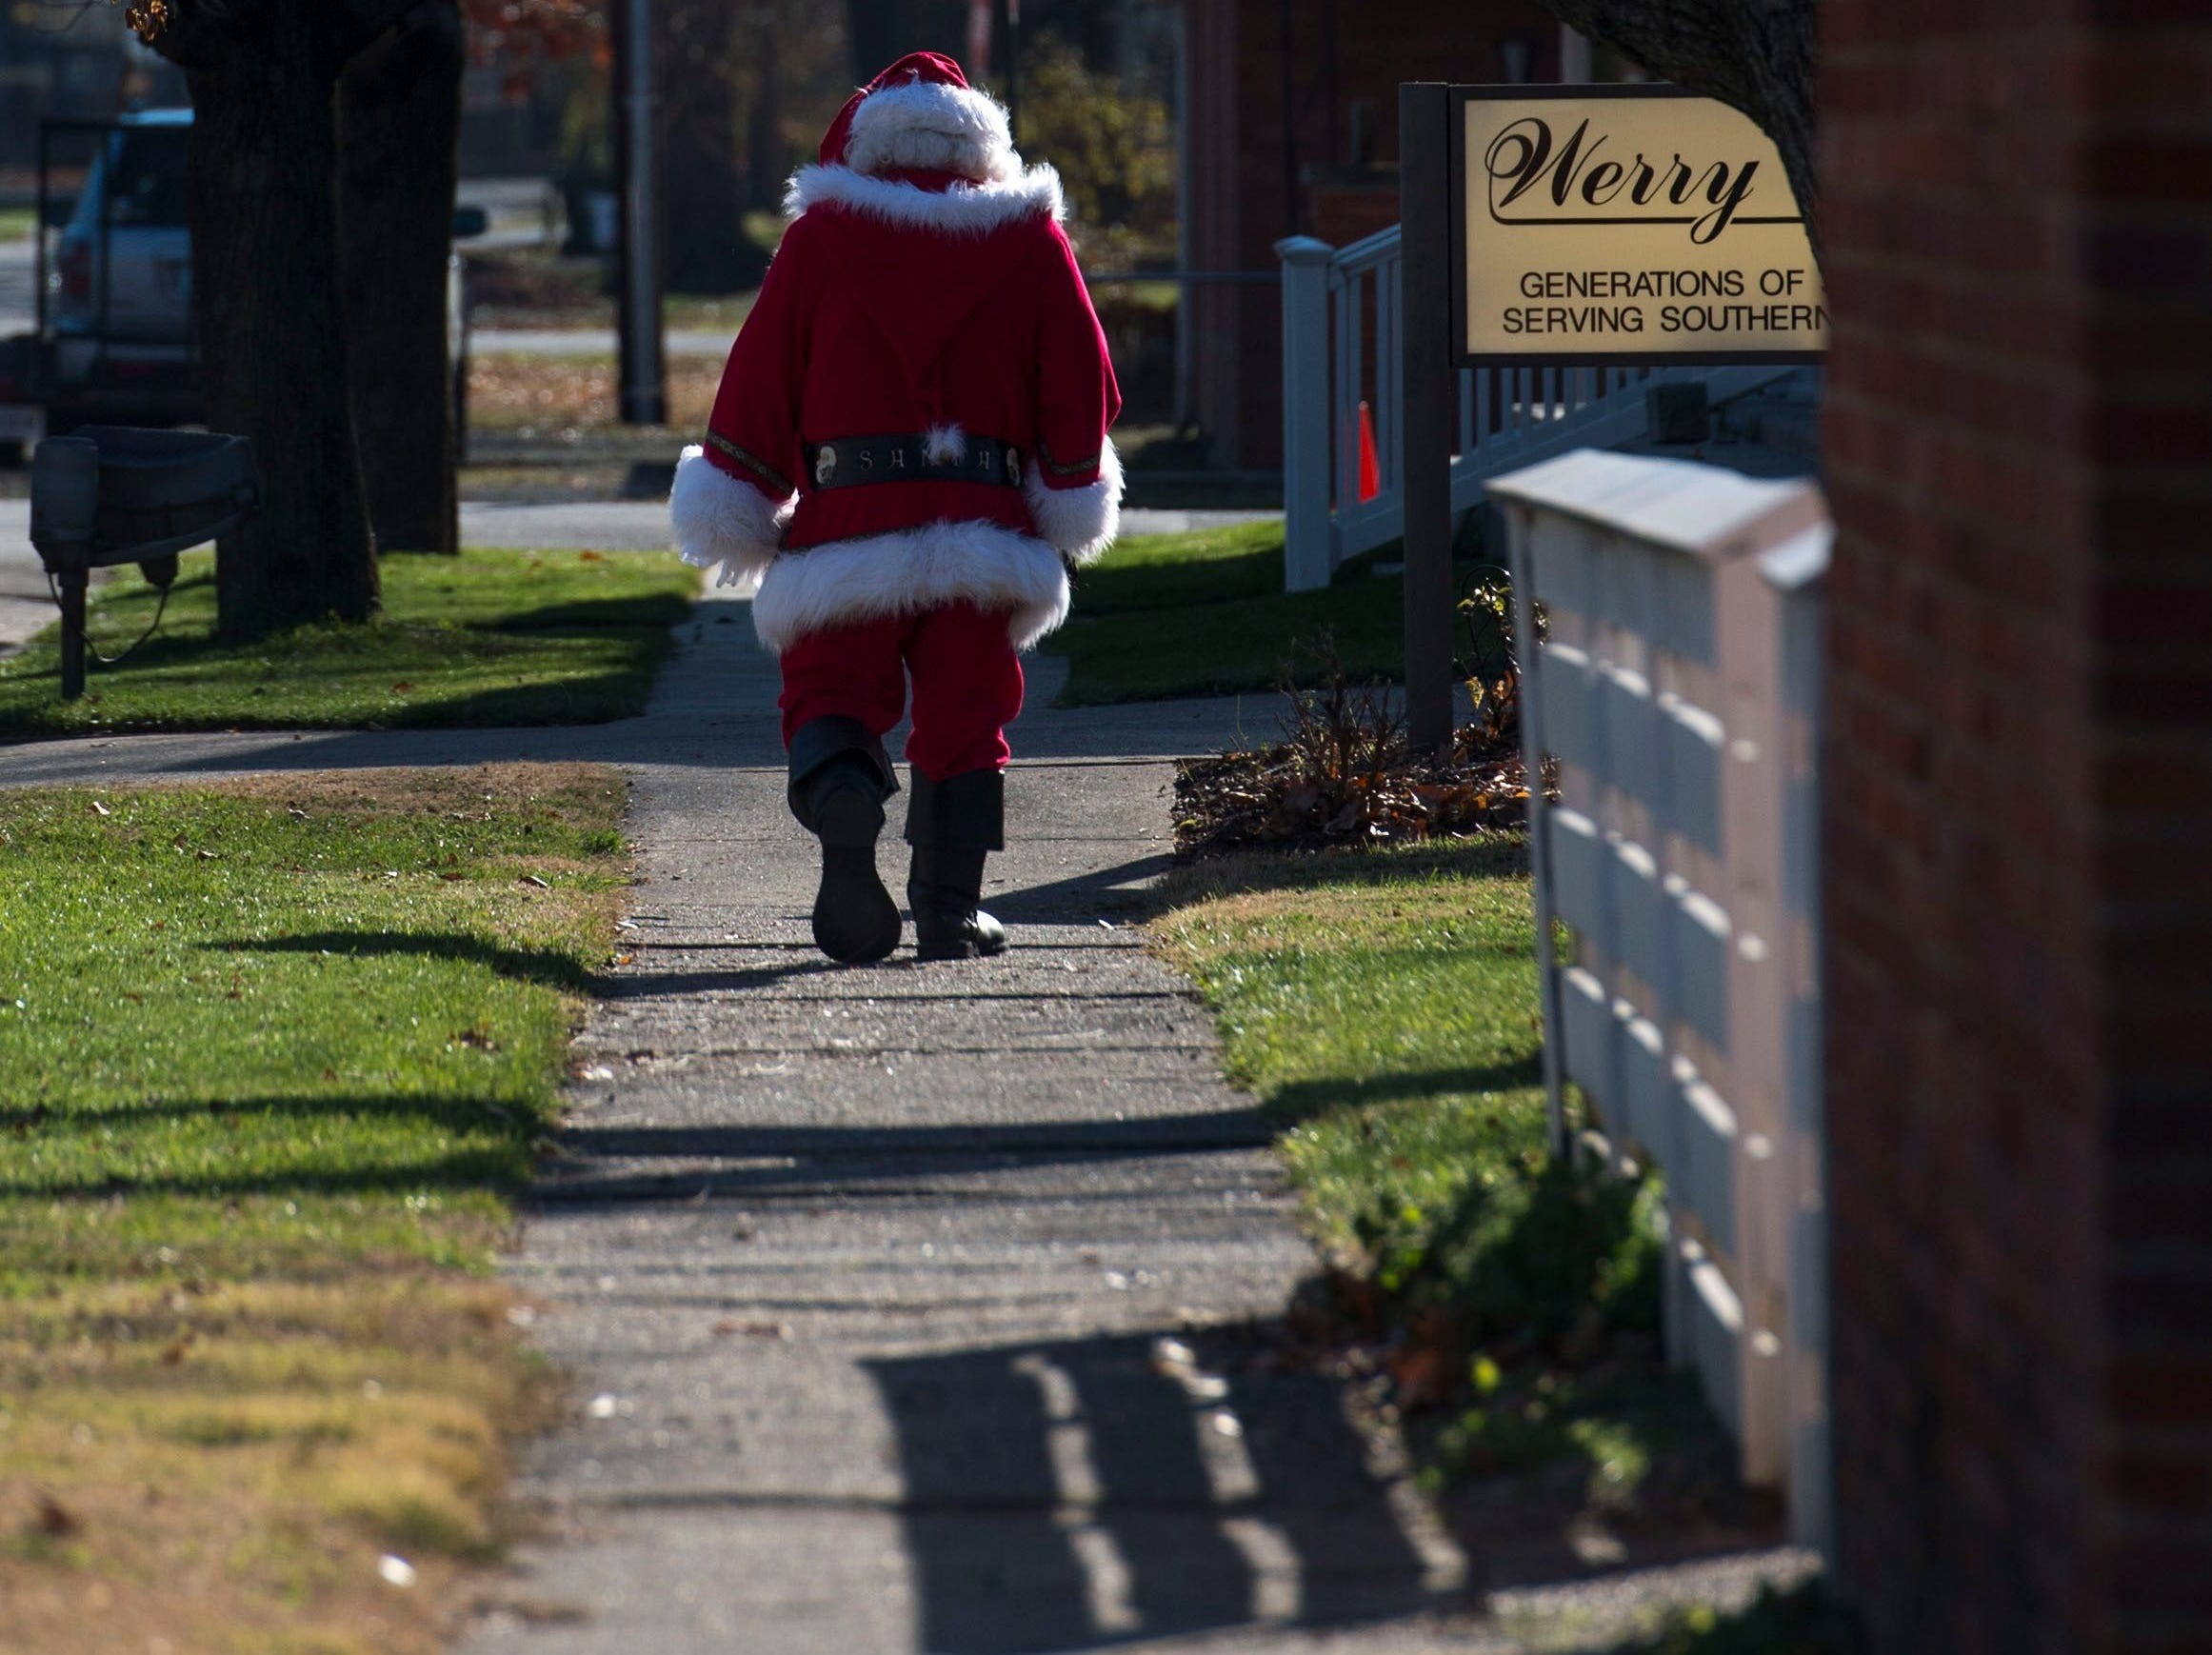 Santa Claus walks to his car at Christmas in New Harmony. The event included a craft market, musical performances, open houses at local merchants, and photos with Santa.